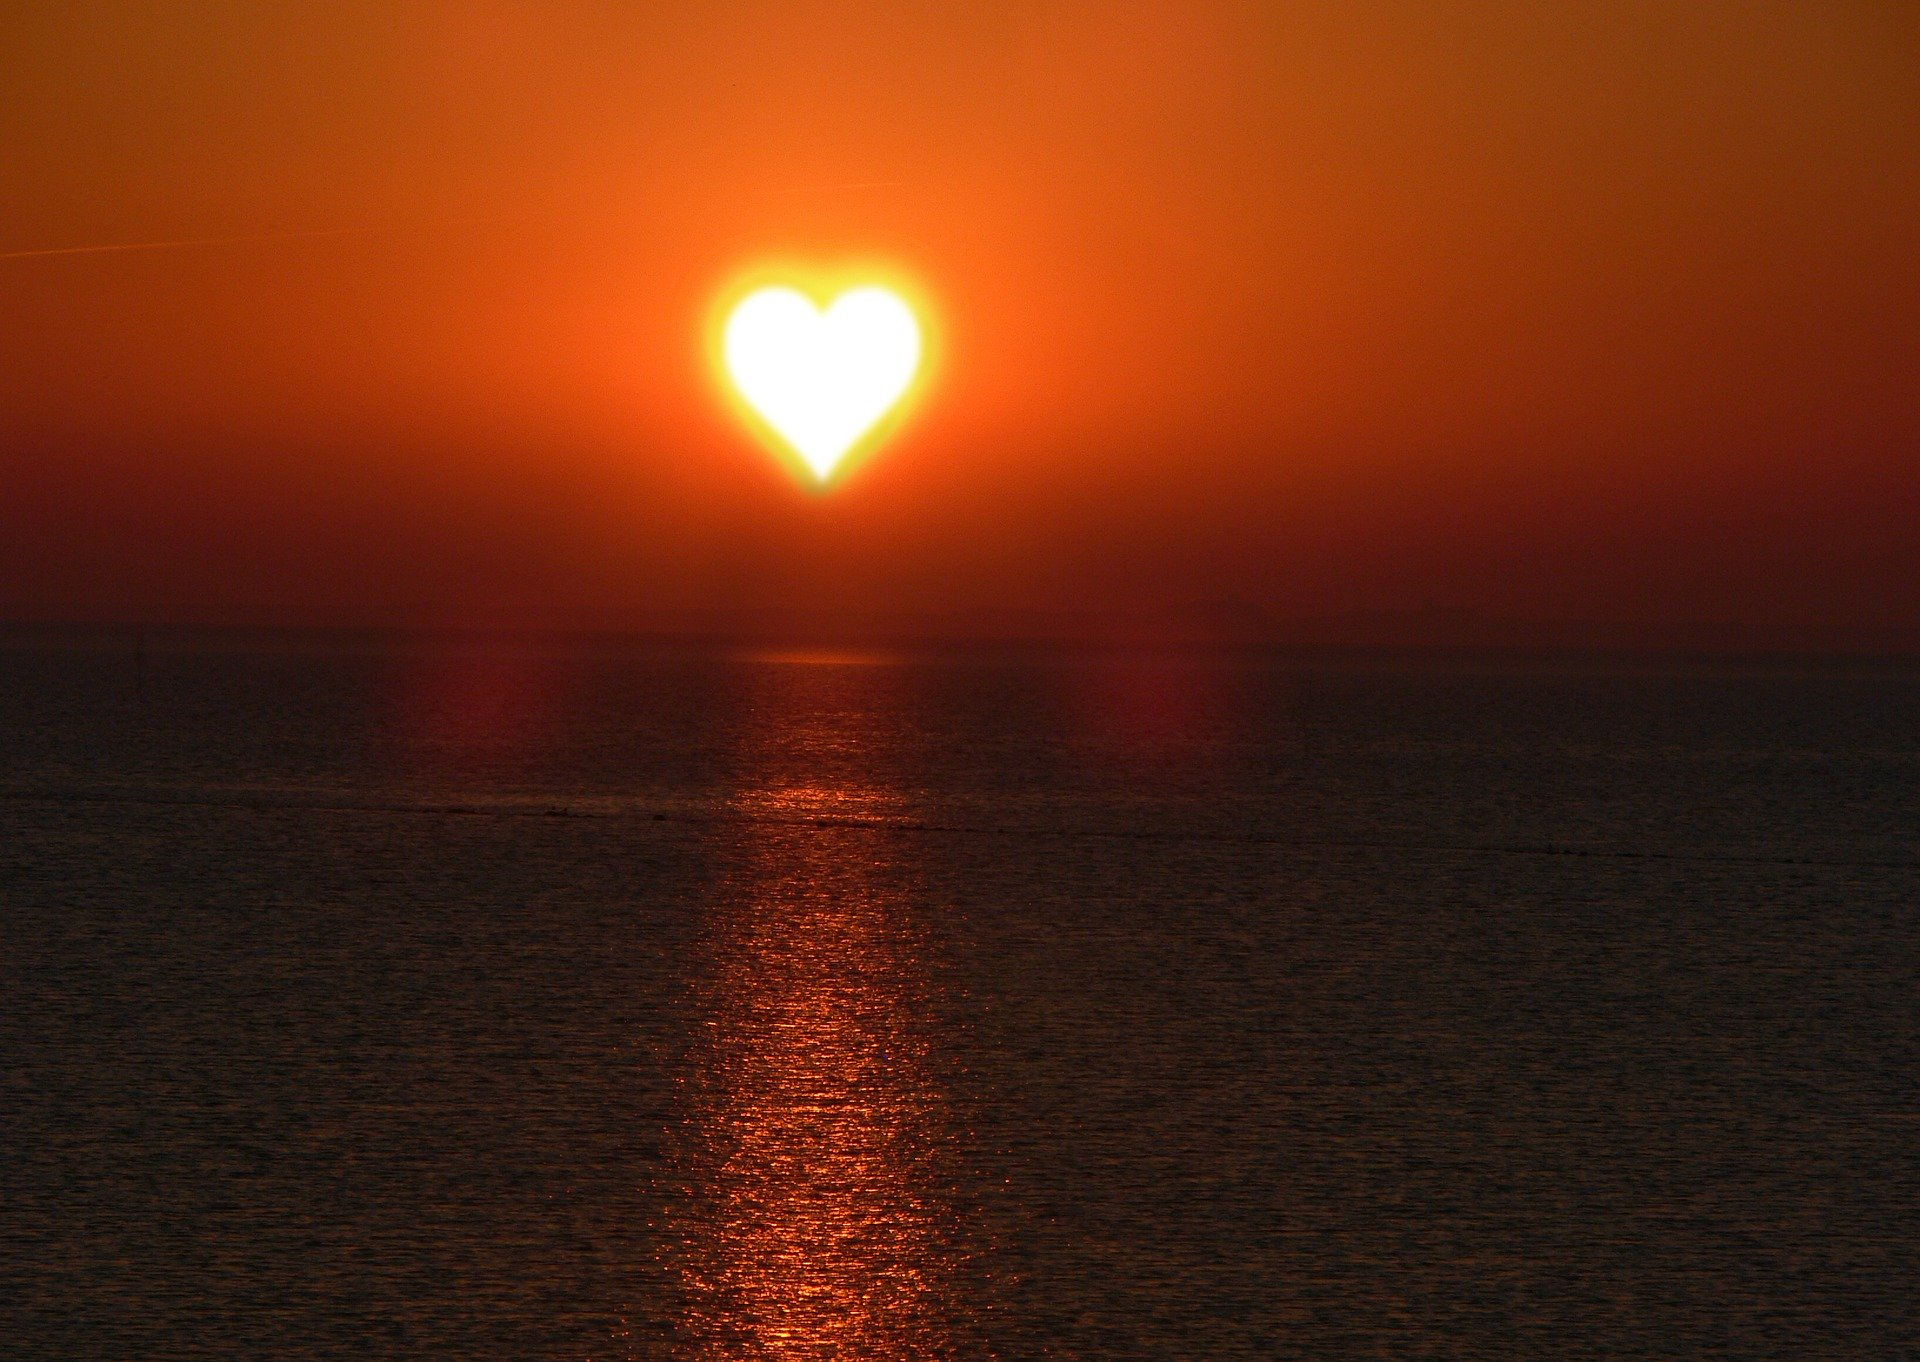 Setting sun in the shape of a heart